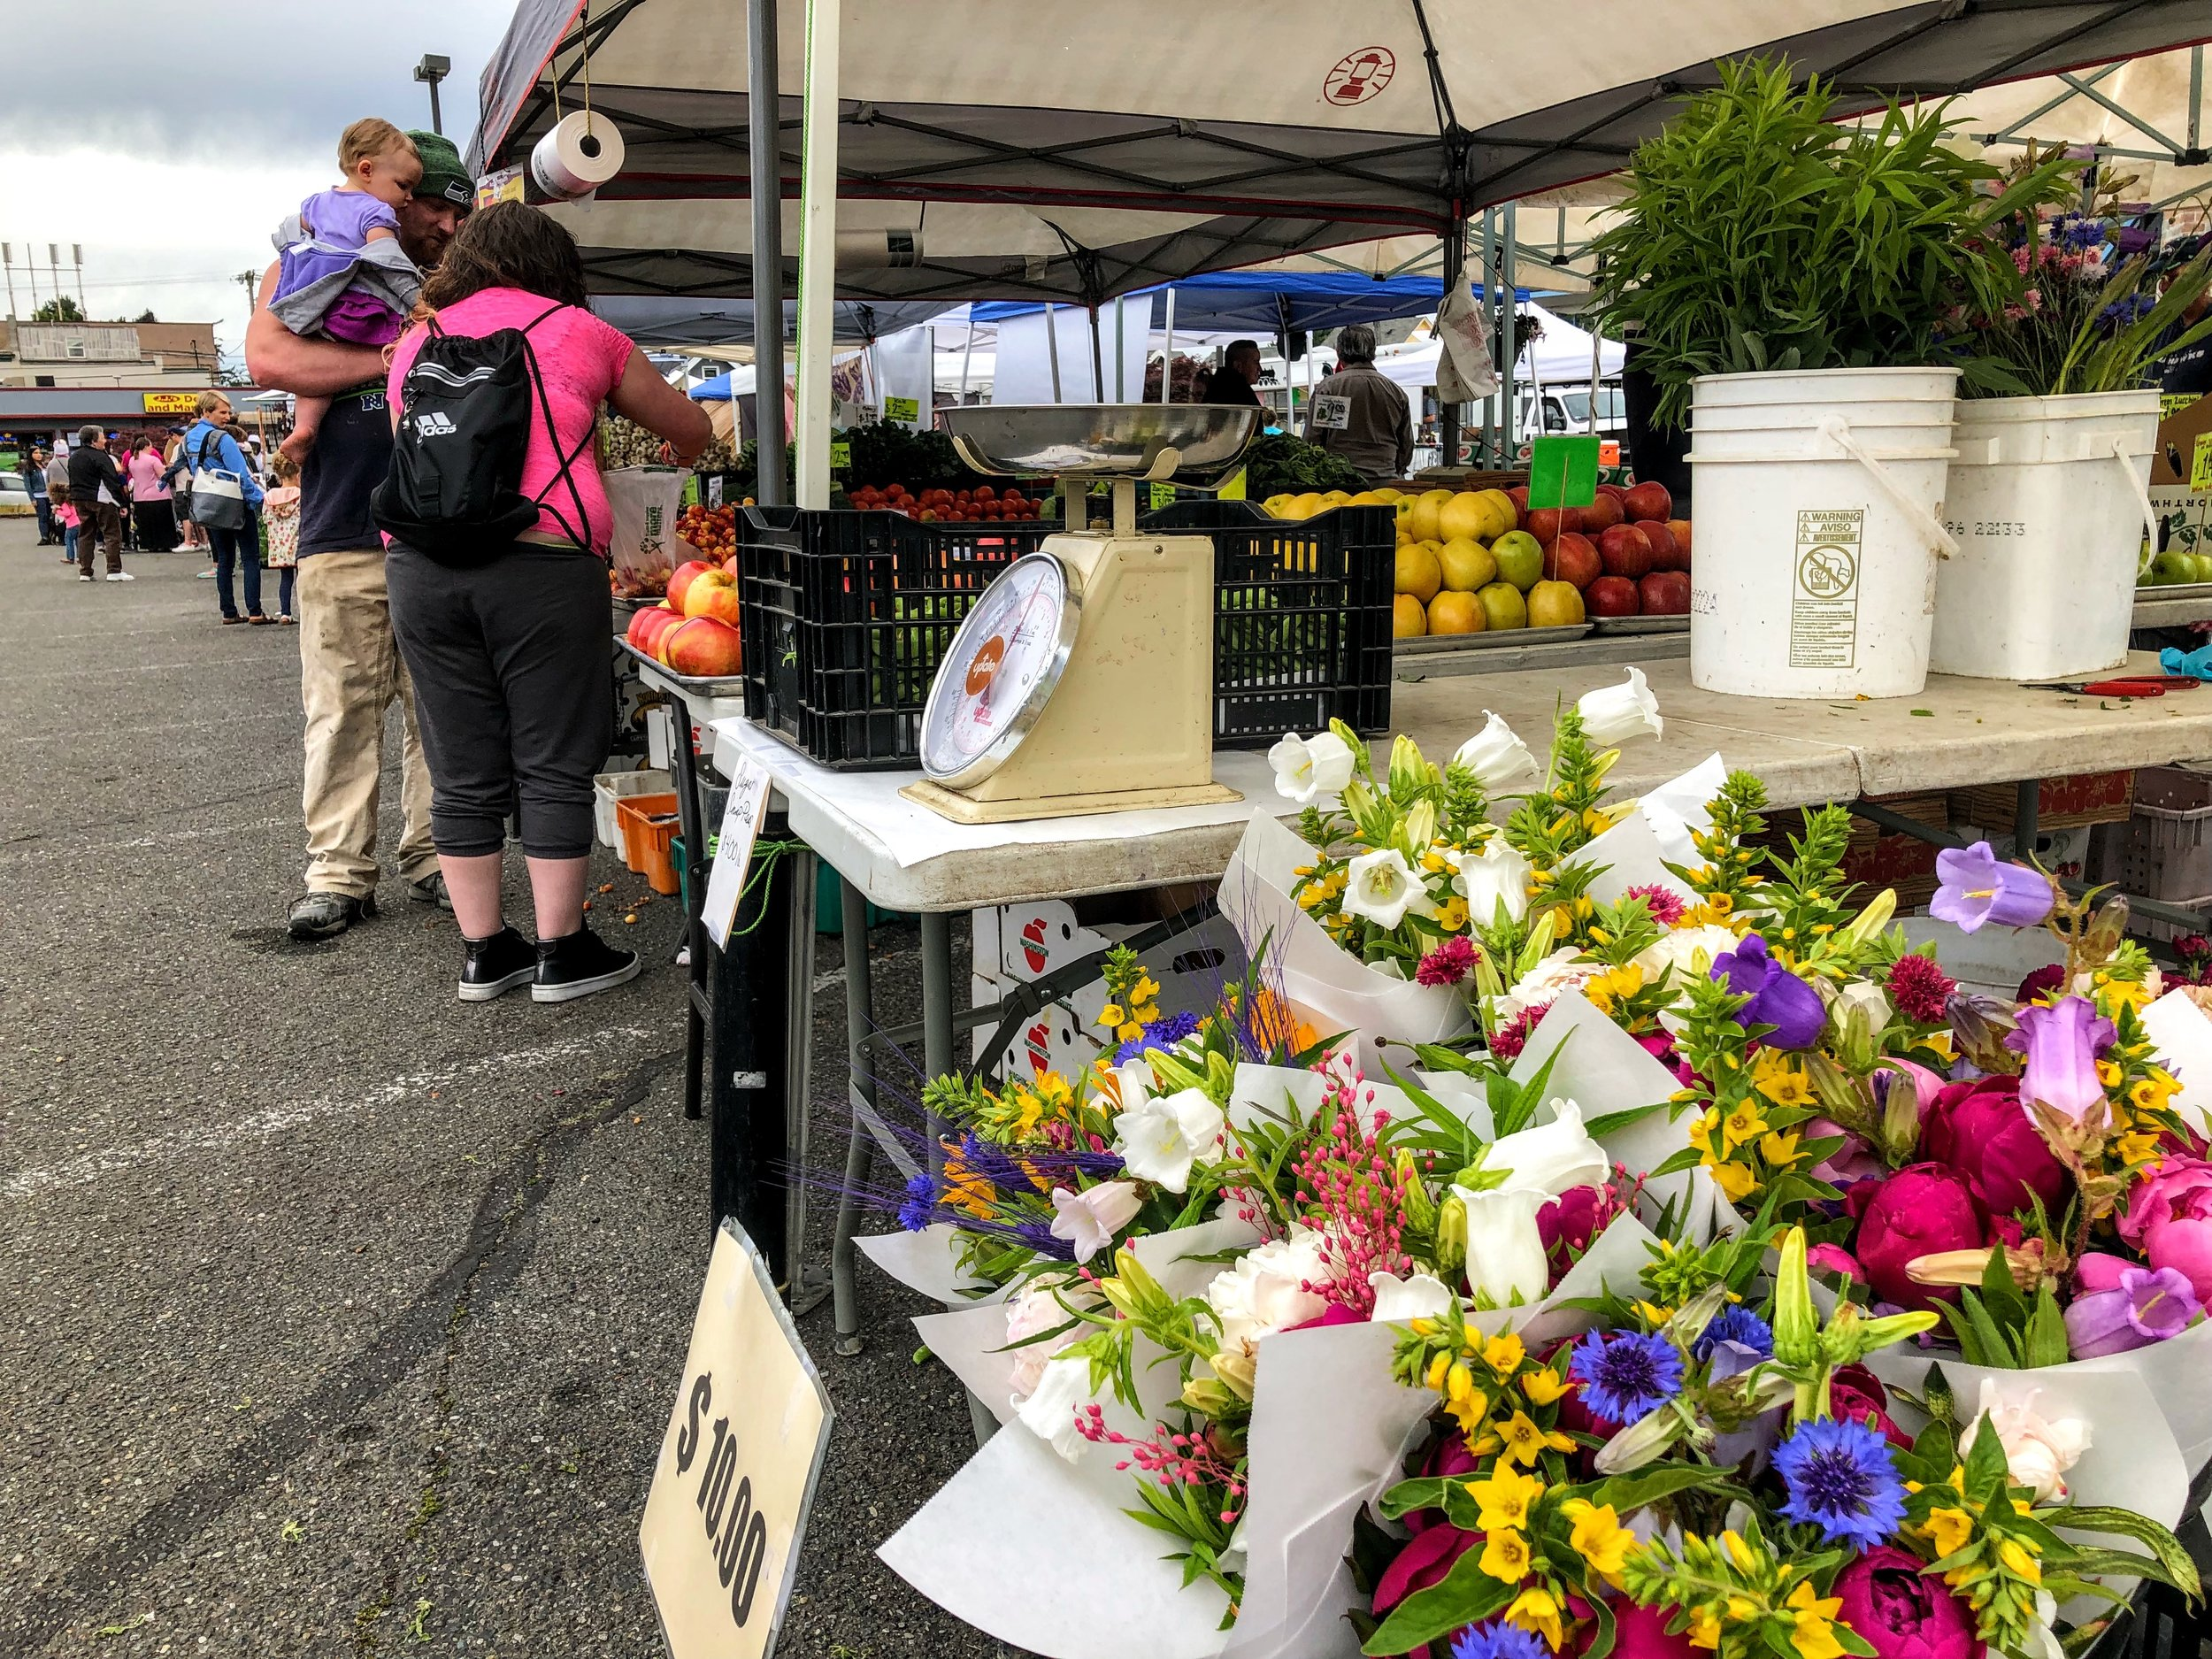 We found lovely flowers and beautiful produce at the Eastside market last summer!